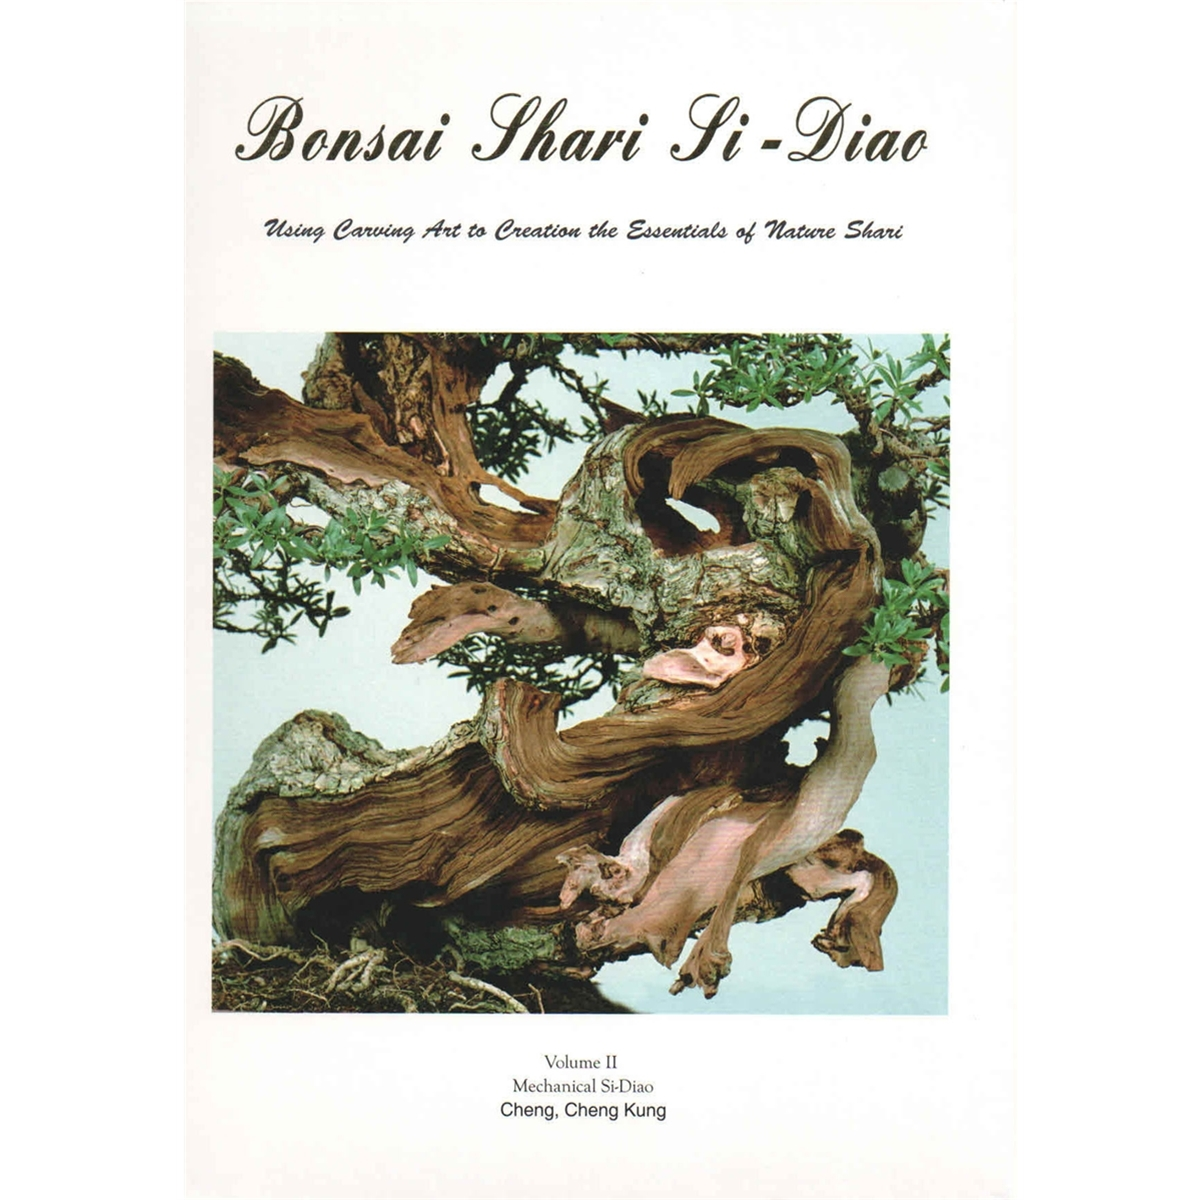 Bonsai Shari Si-Diao  Vol 1